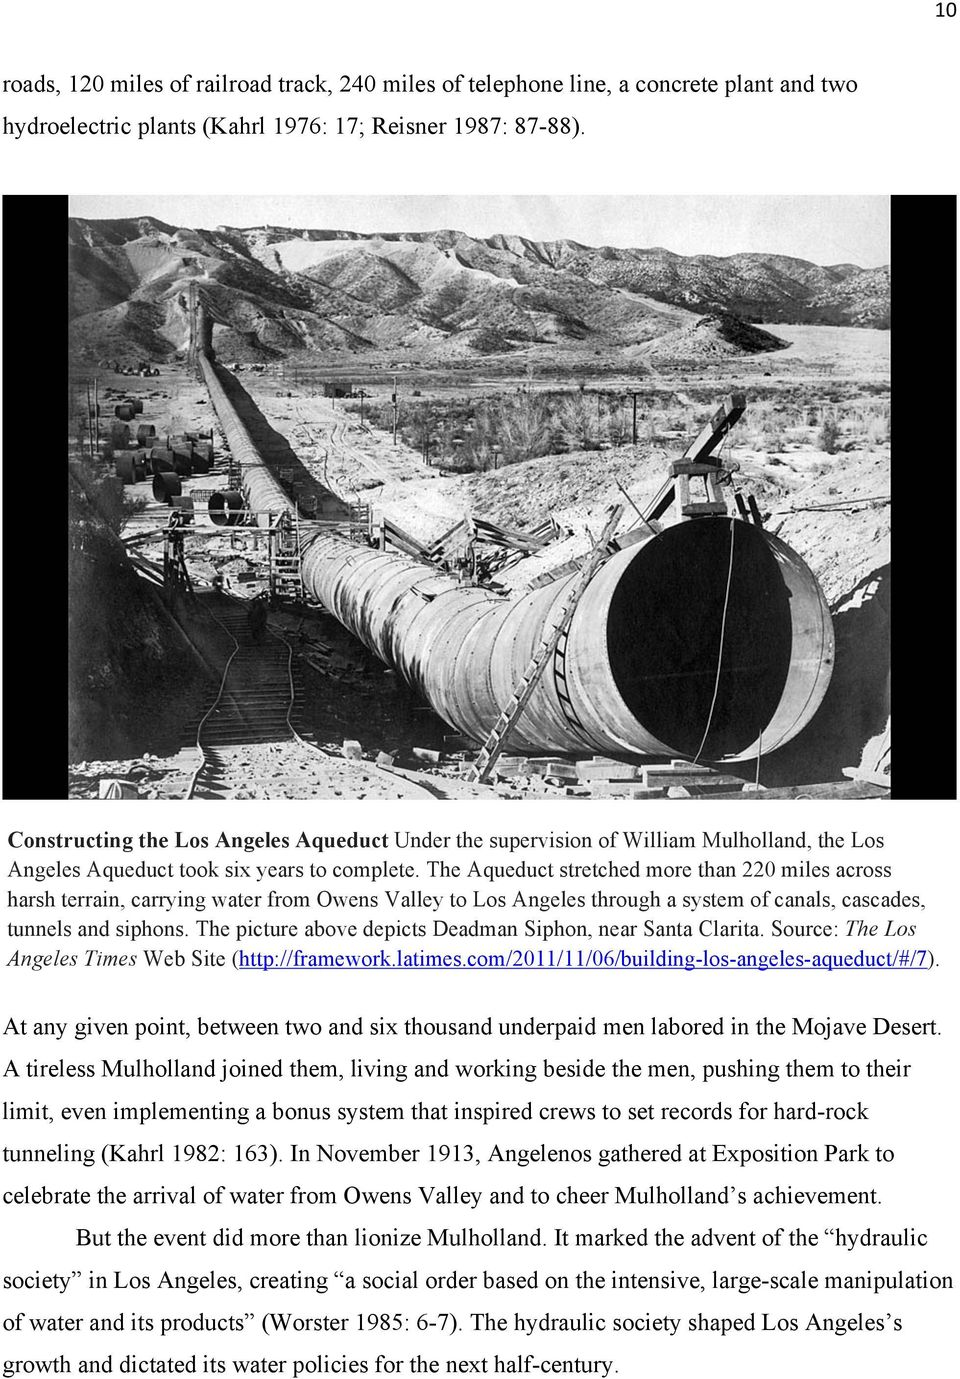 The Aqueduct stretched more than 220 miles across harsh terrain, carrying water from Owens Valley to Los Angeles through a system of canals, cascades, tunnels and siphons.